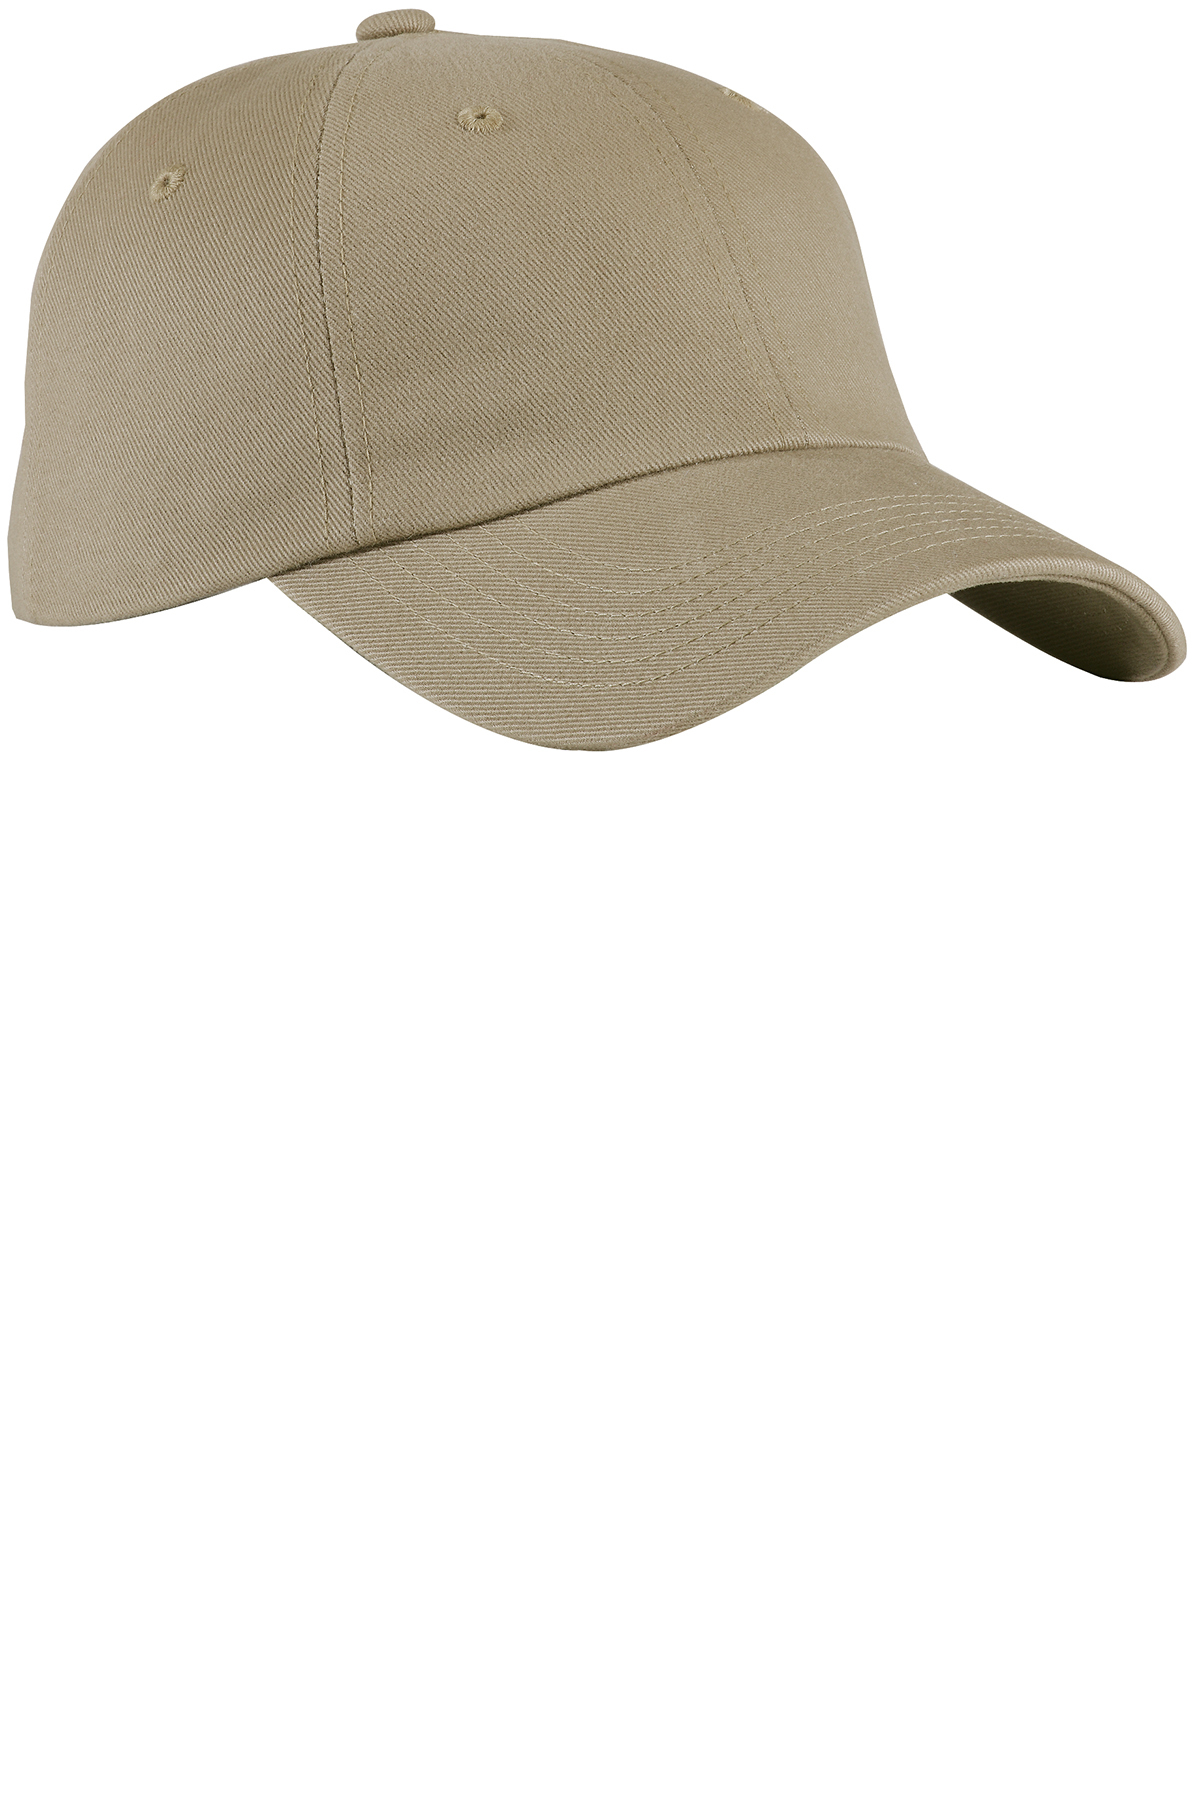 9b5186011d5ea Port Authority® Brushed Twill Cap | Pigment/Garment Dyed | Caps ...